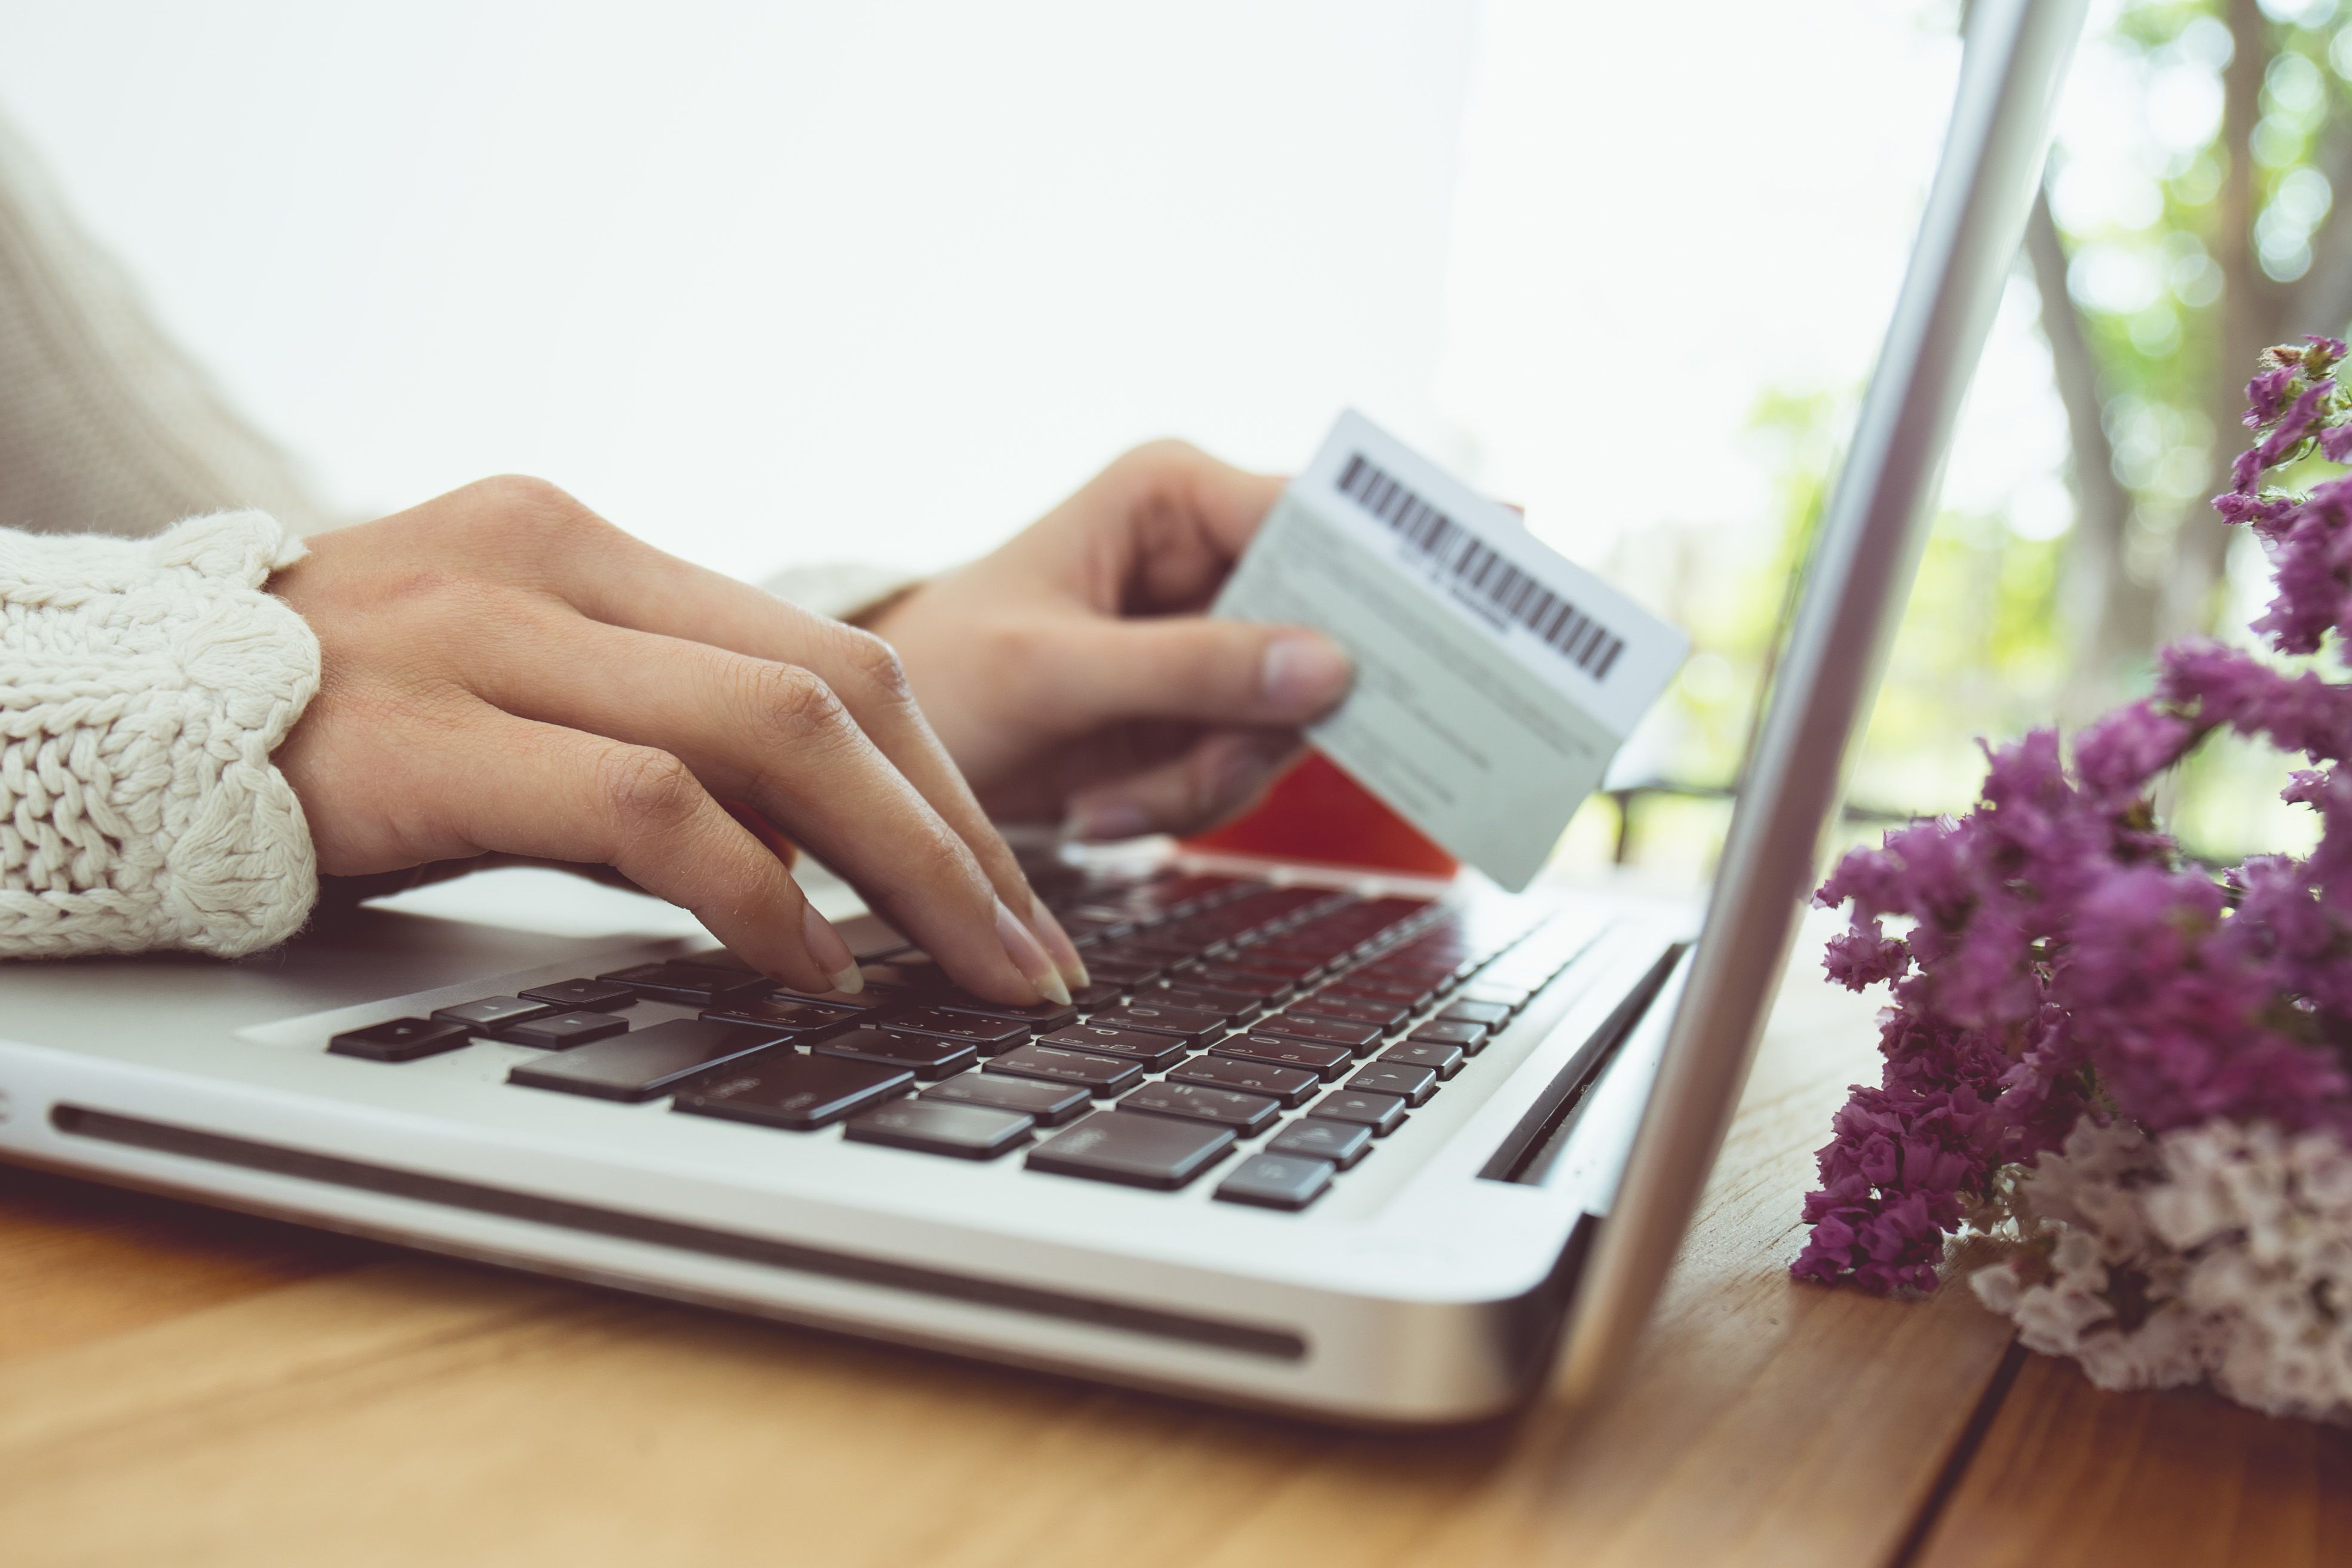 These Are the 8 Best Online Shopping Hacks for Saving Money